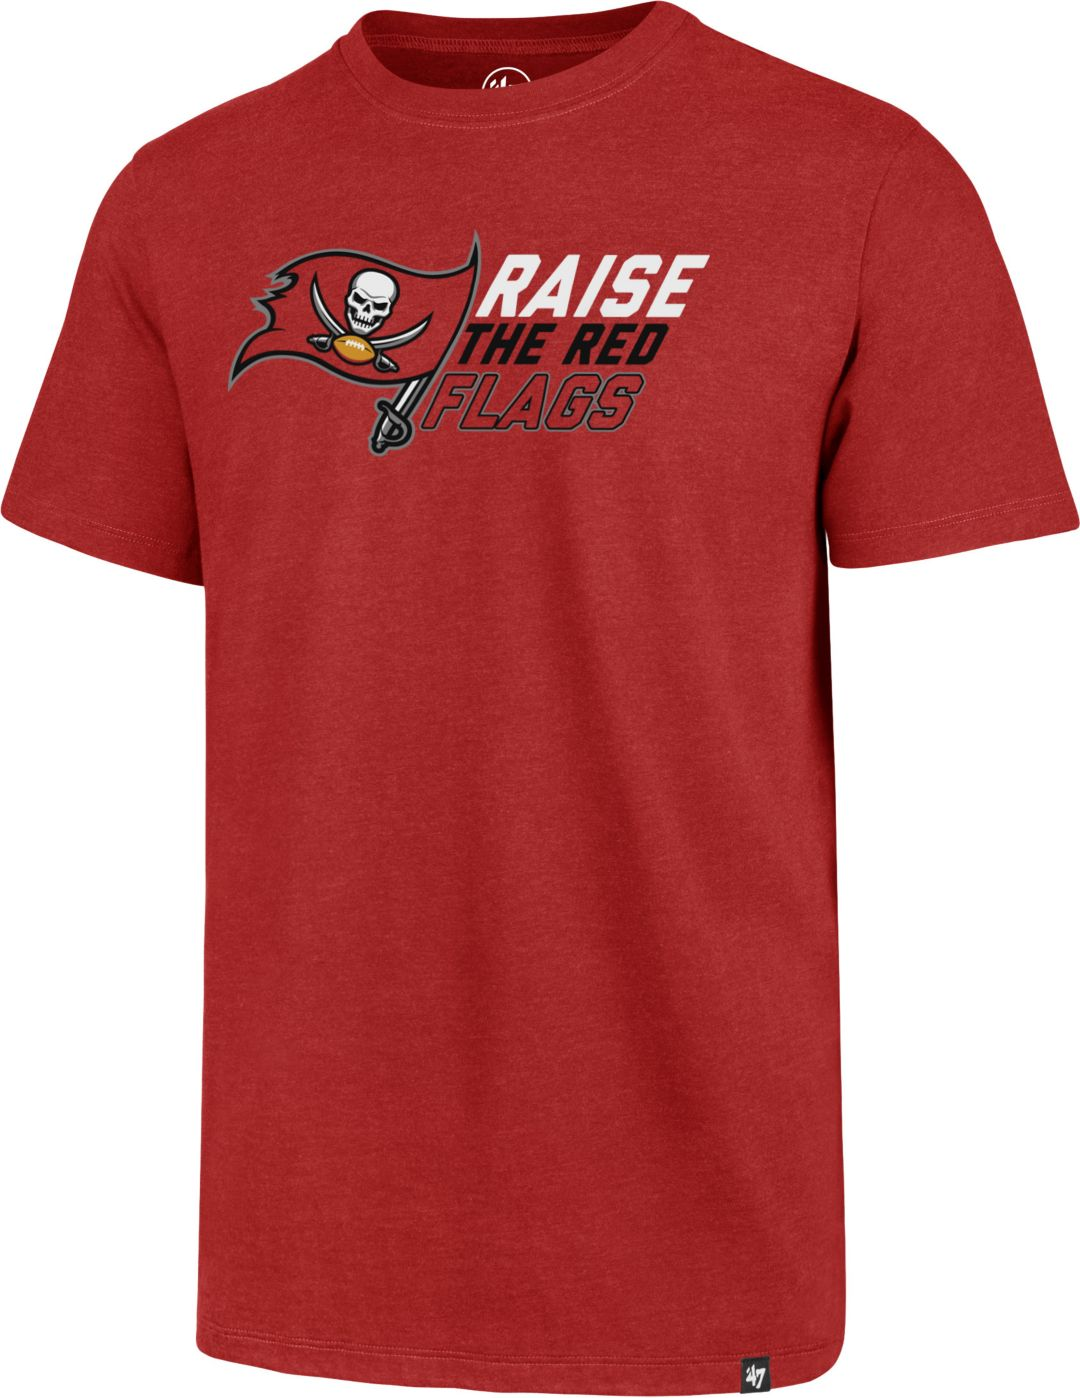 47 Men's Tampa Bay Buccaneers Raise the Flag Red T Shirt | DICK'S  for cheap